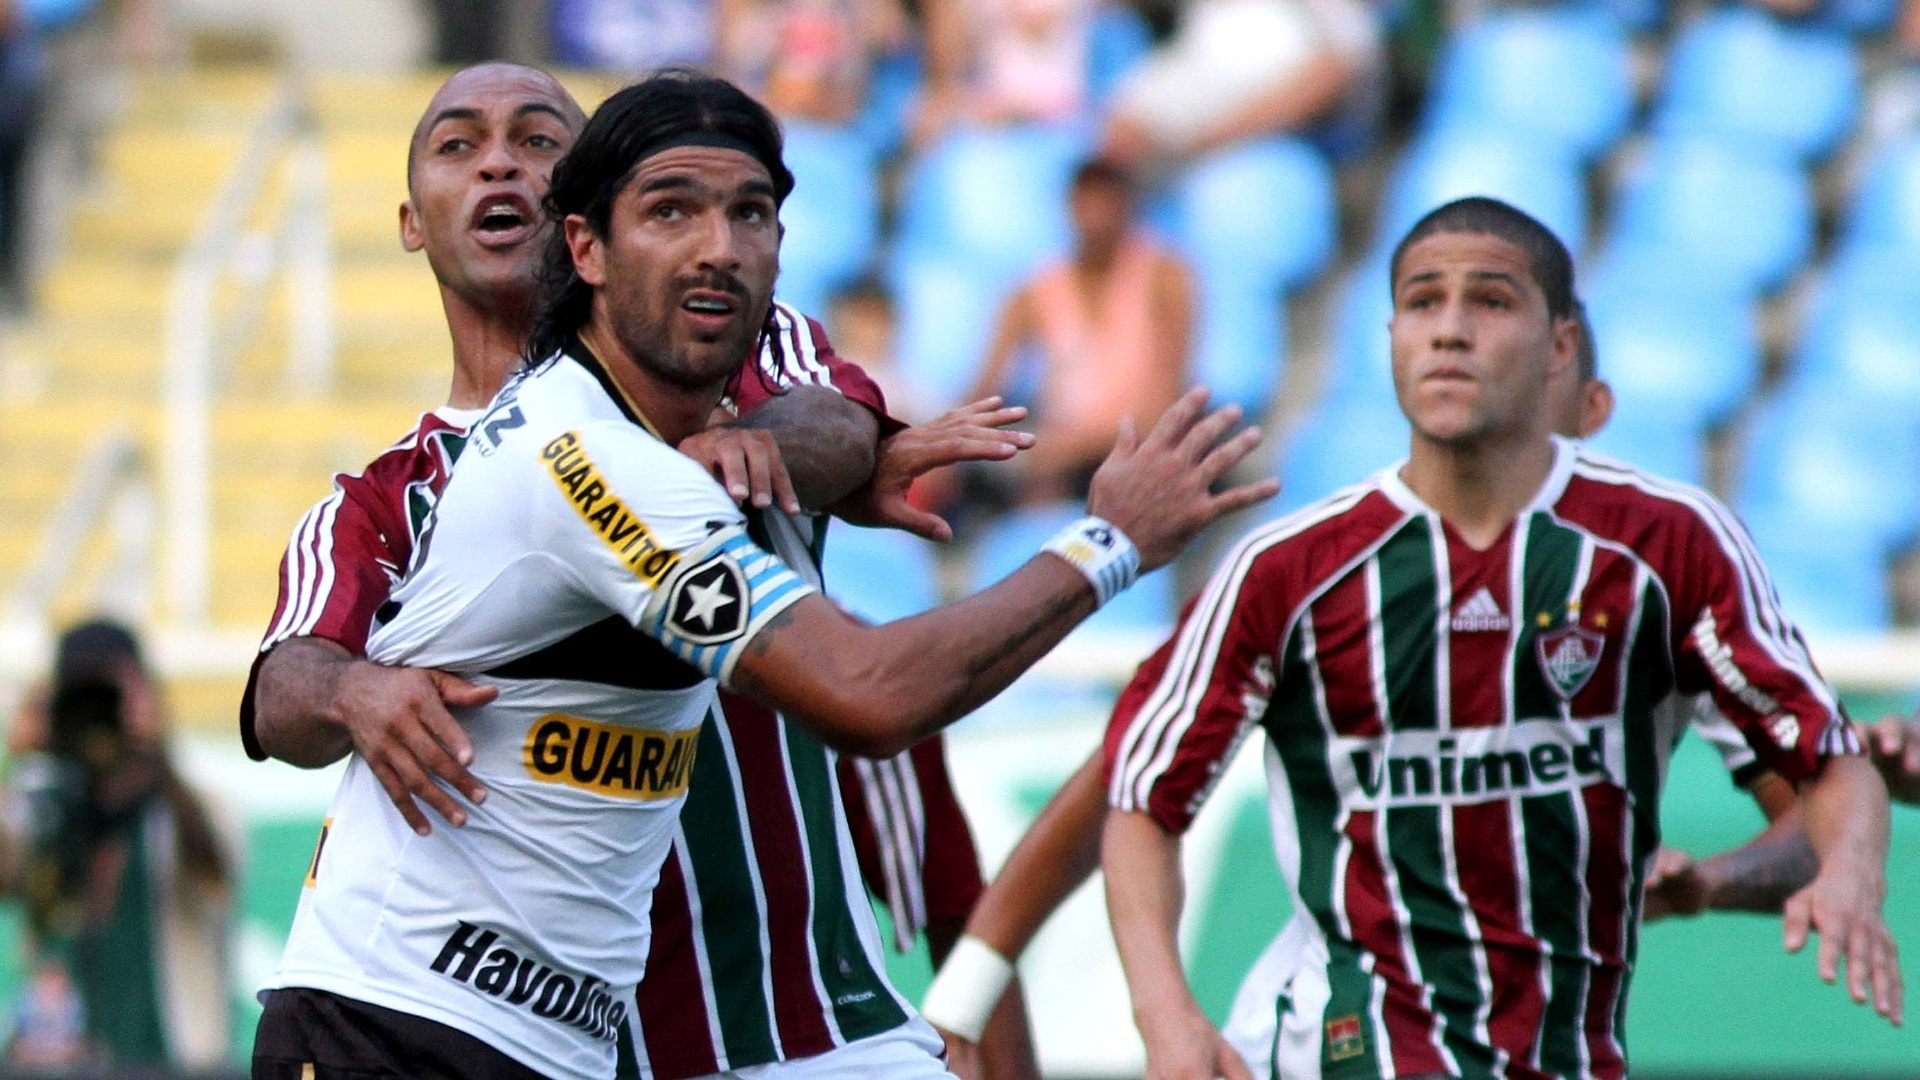 O atacante Loco Abreu, do Botafogo, e o zagueiro Leandro Euzbio, do Fluminense, disputam espao na rea